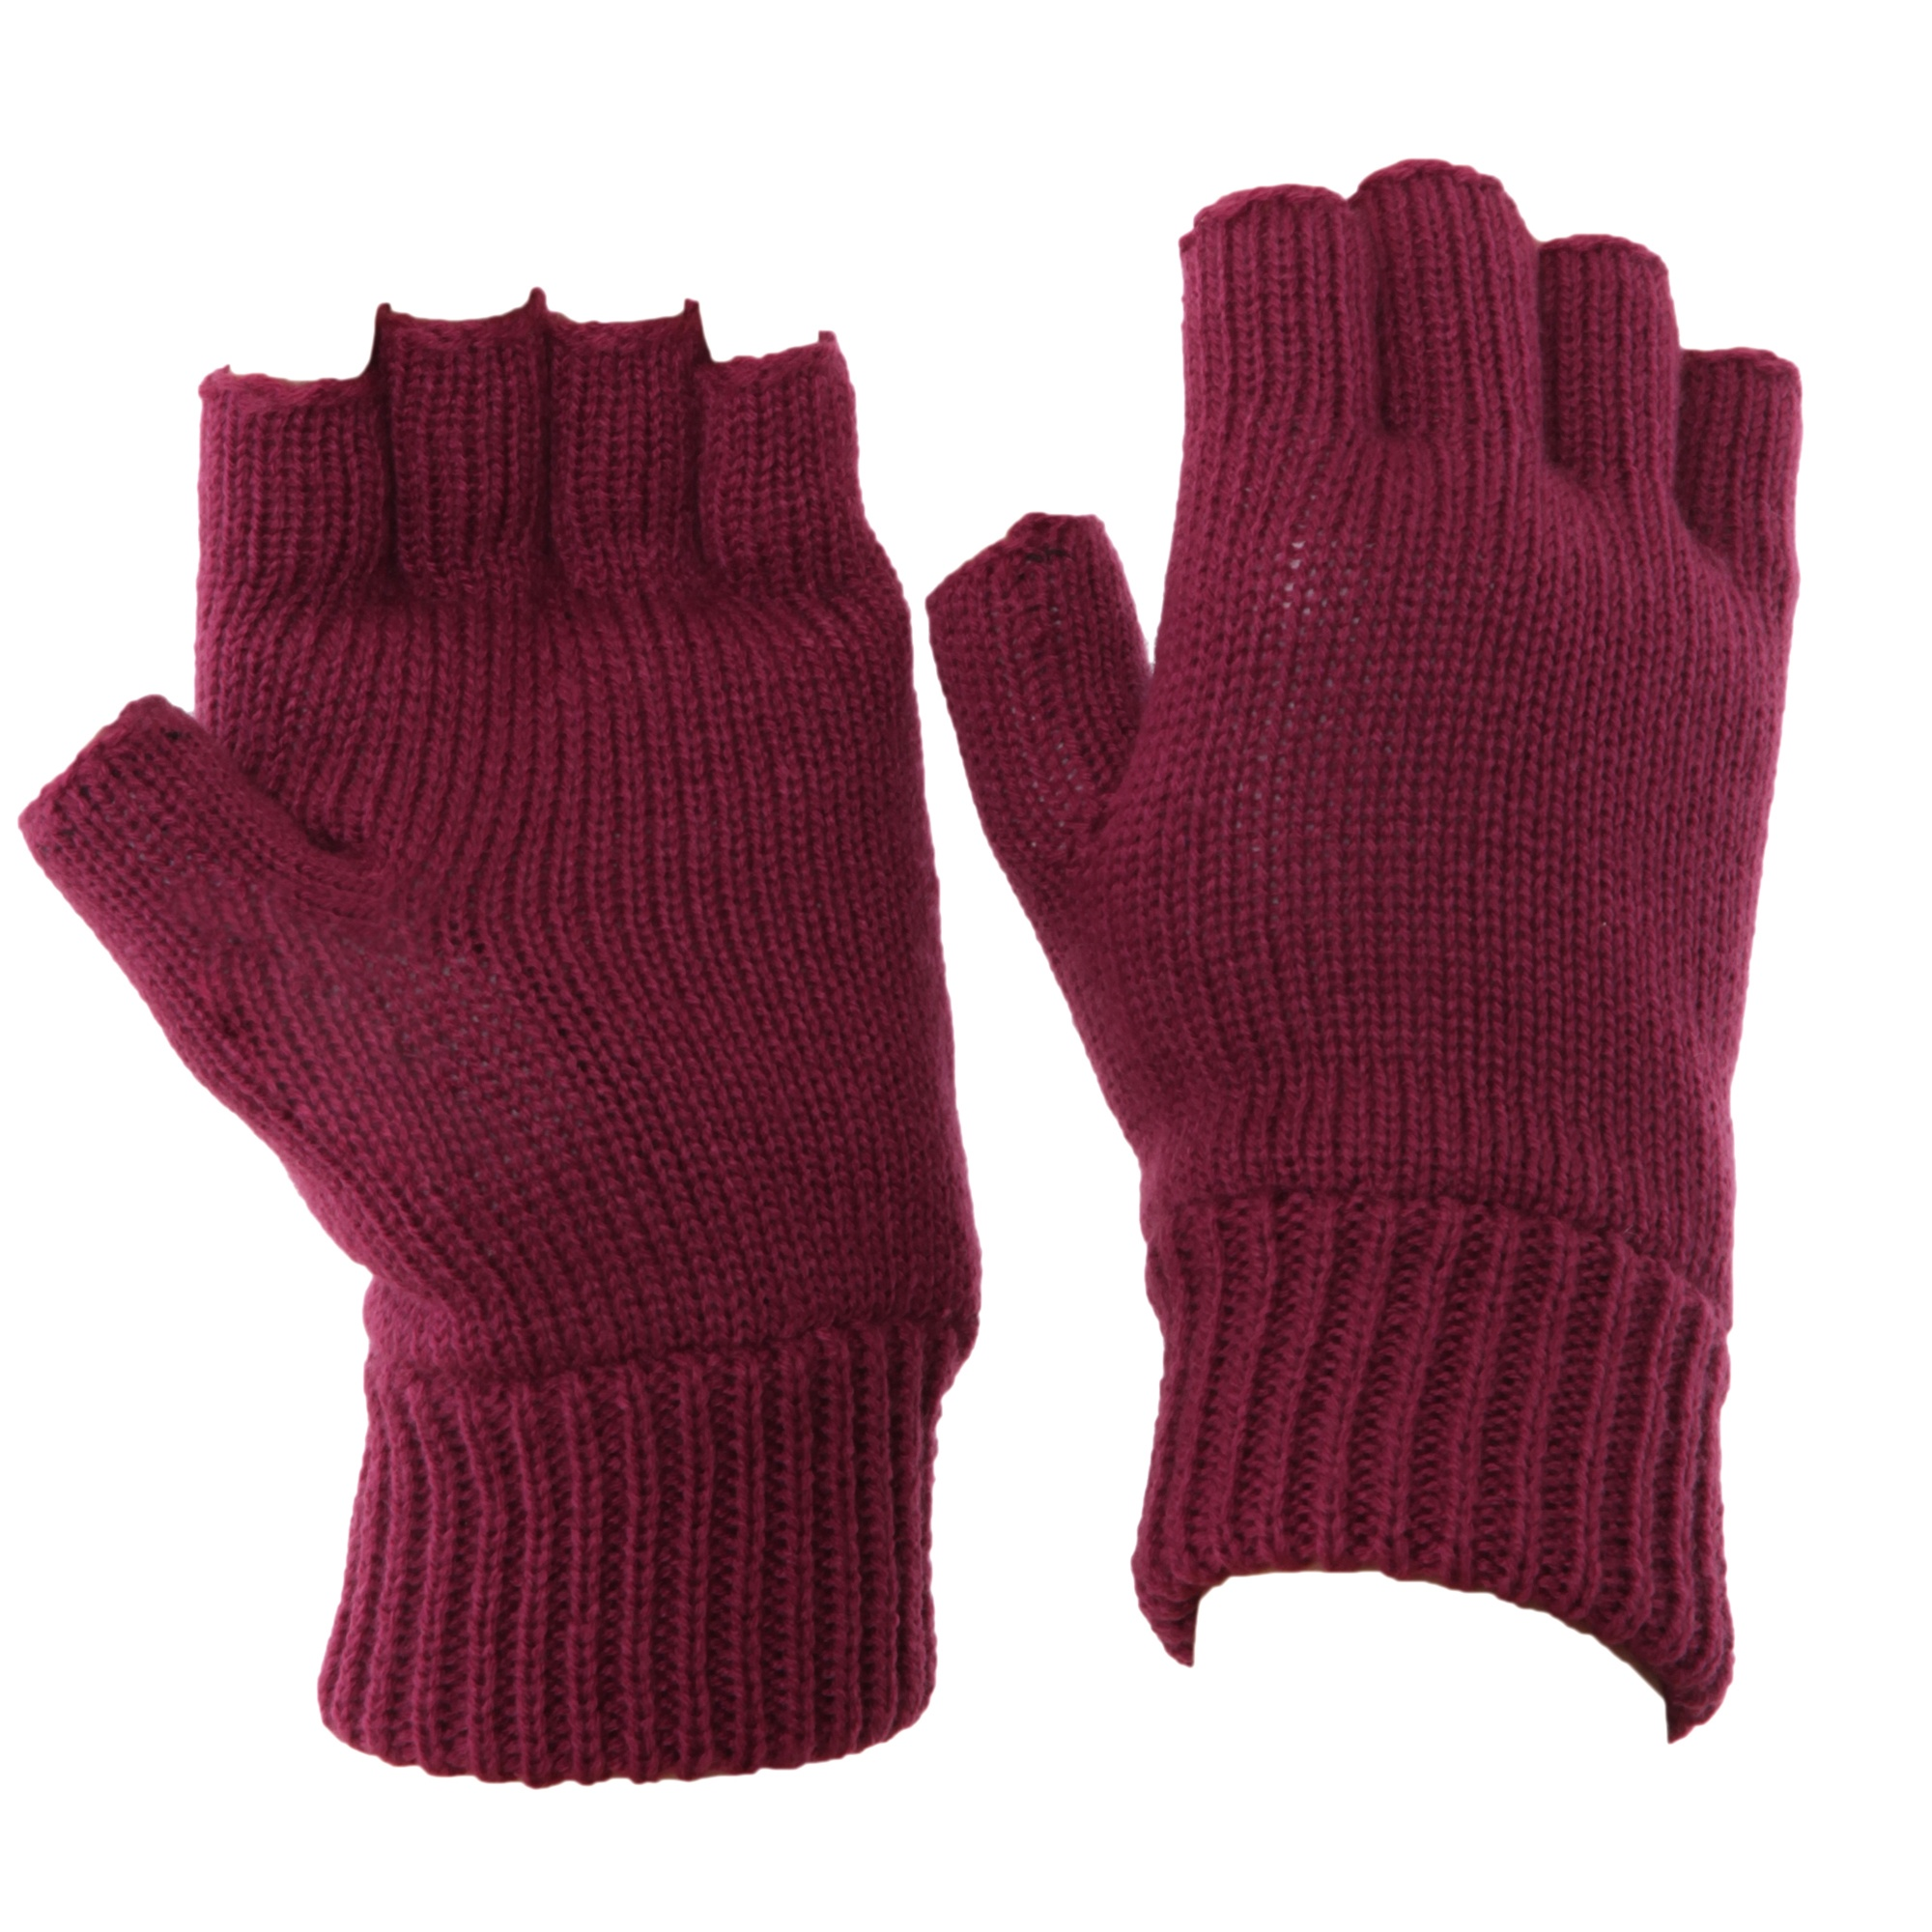 FLOSO-Ladies-Womens-Thinsulate-Thermal-Fingerless-Winter-Gloves-3M40g-GL191 thumbnail 4